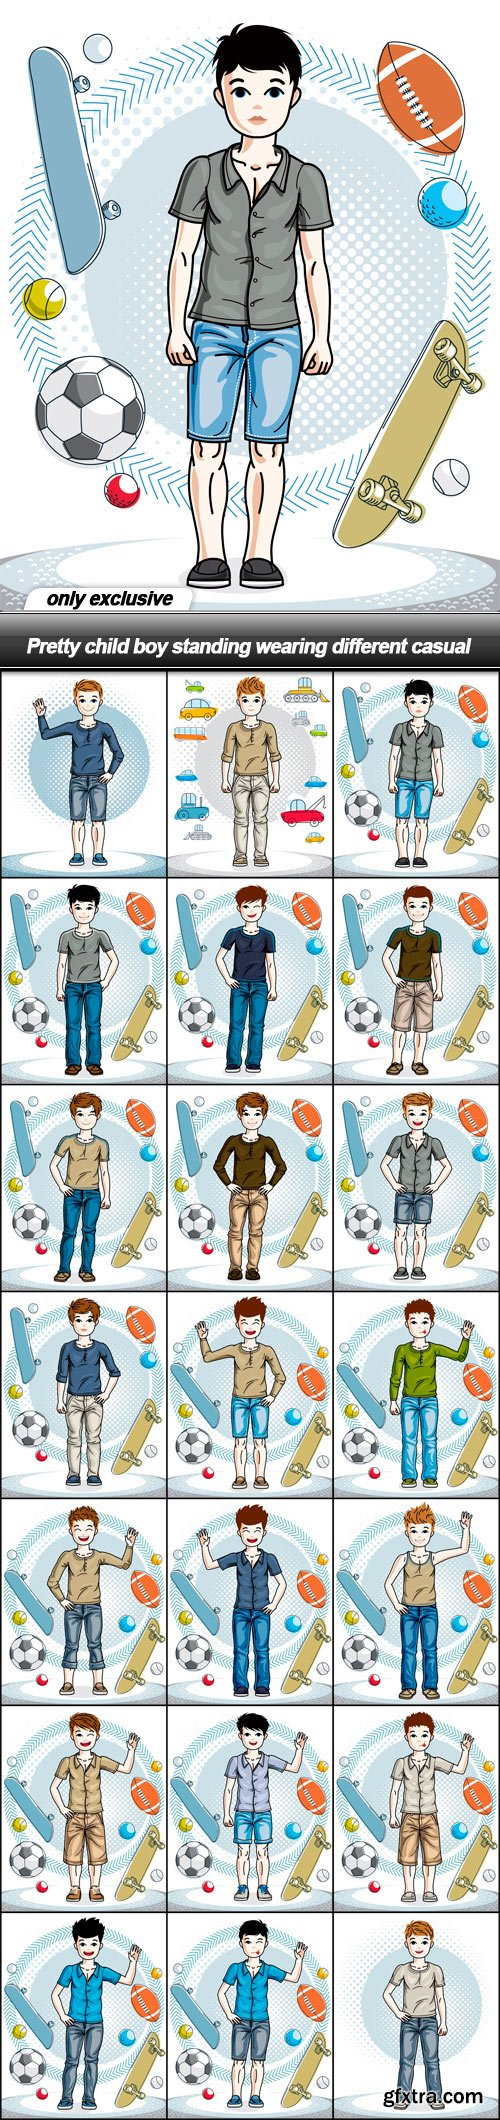 Pretty child boy standing wearing different casual - 21 EPS